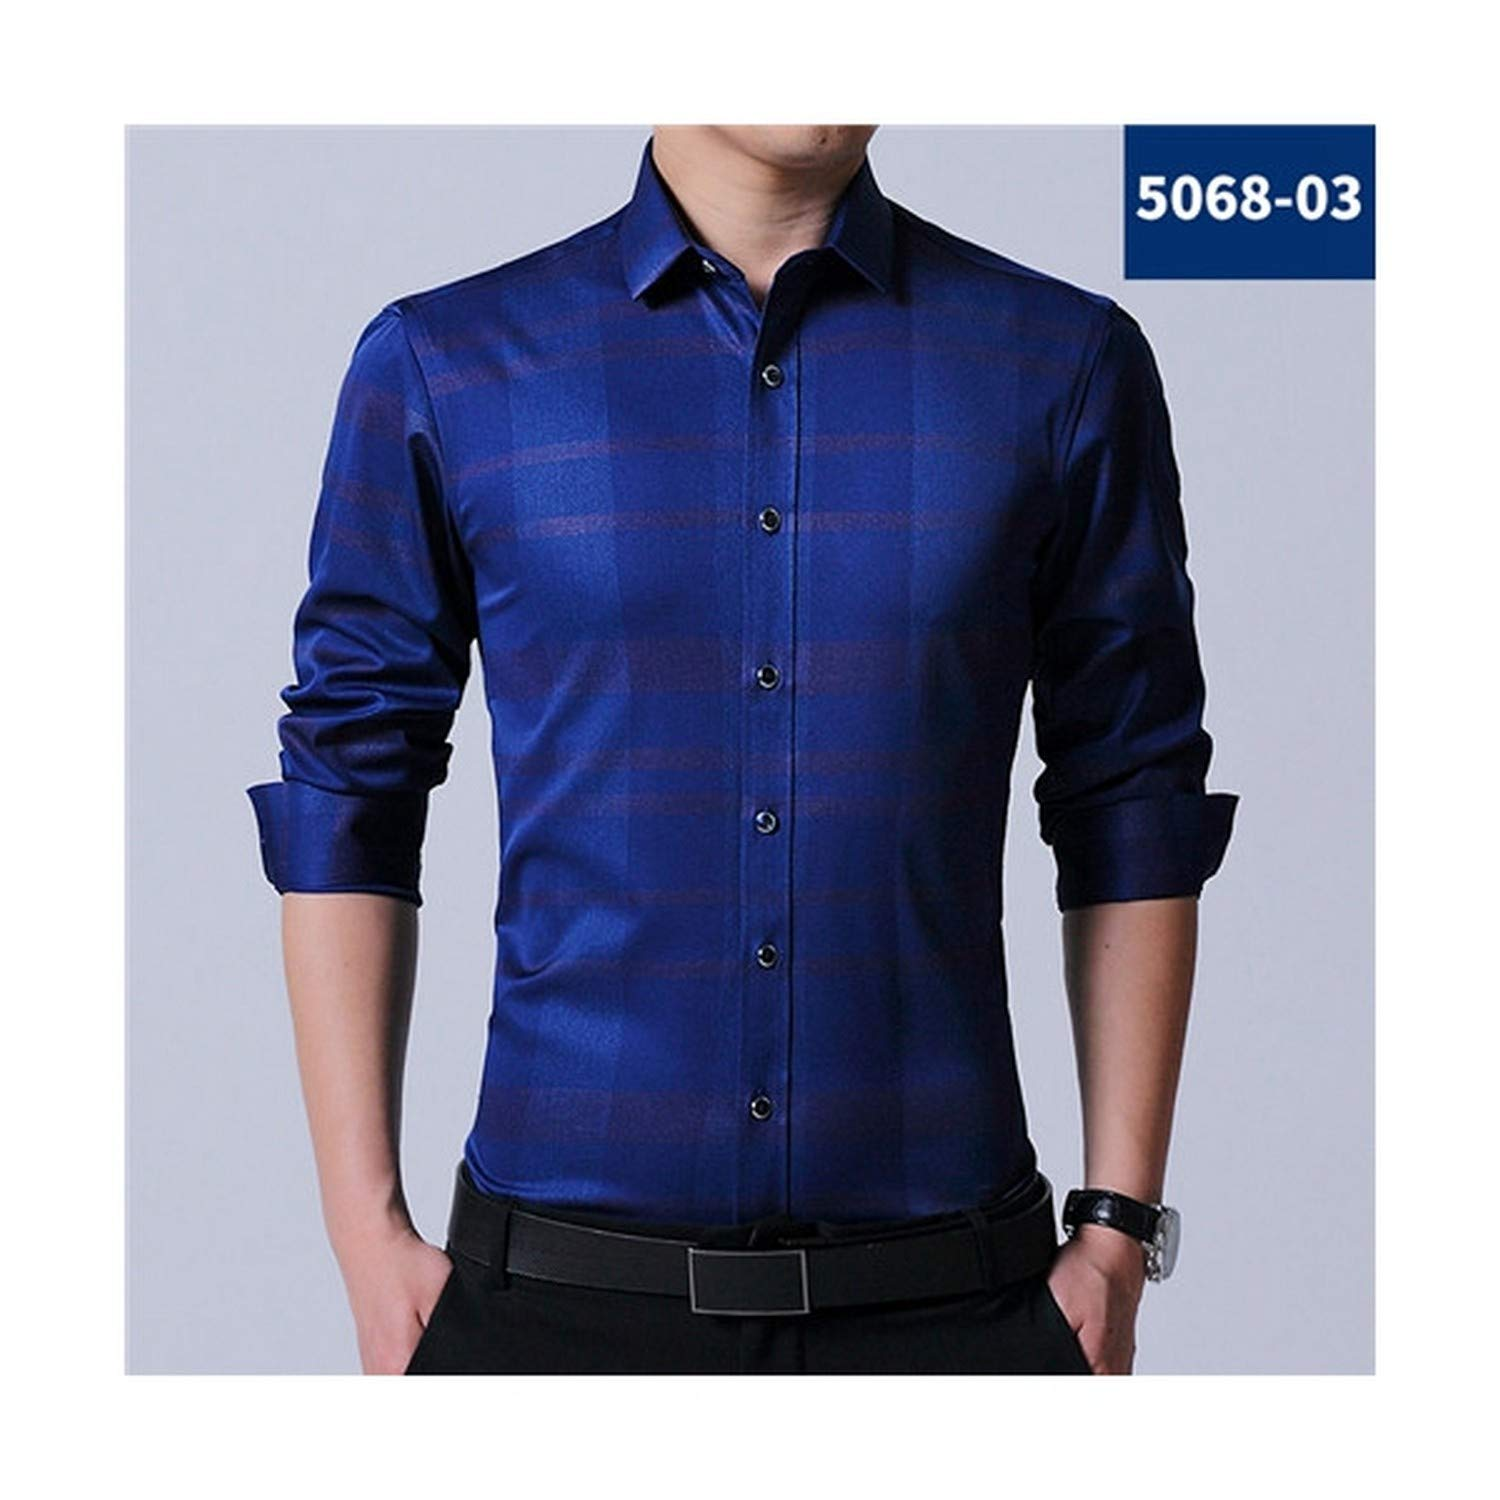 Zesoma Without Chest Pocket Fashion Casual Shirt Long Sleeve Turndown Collar